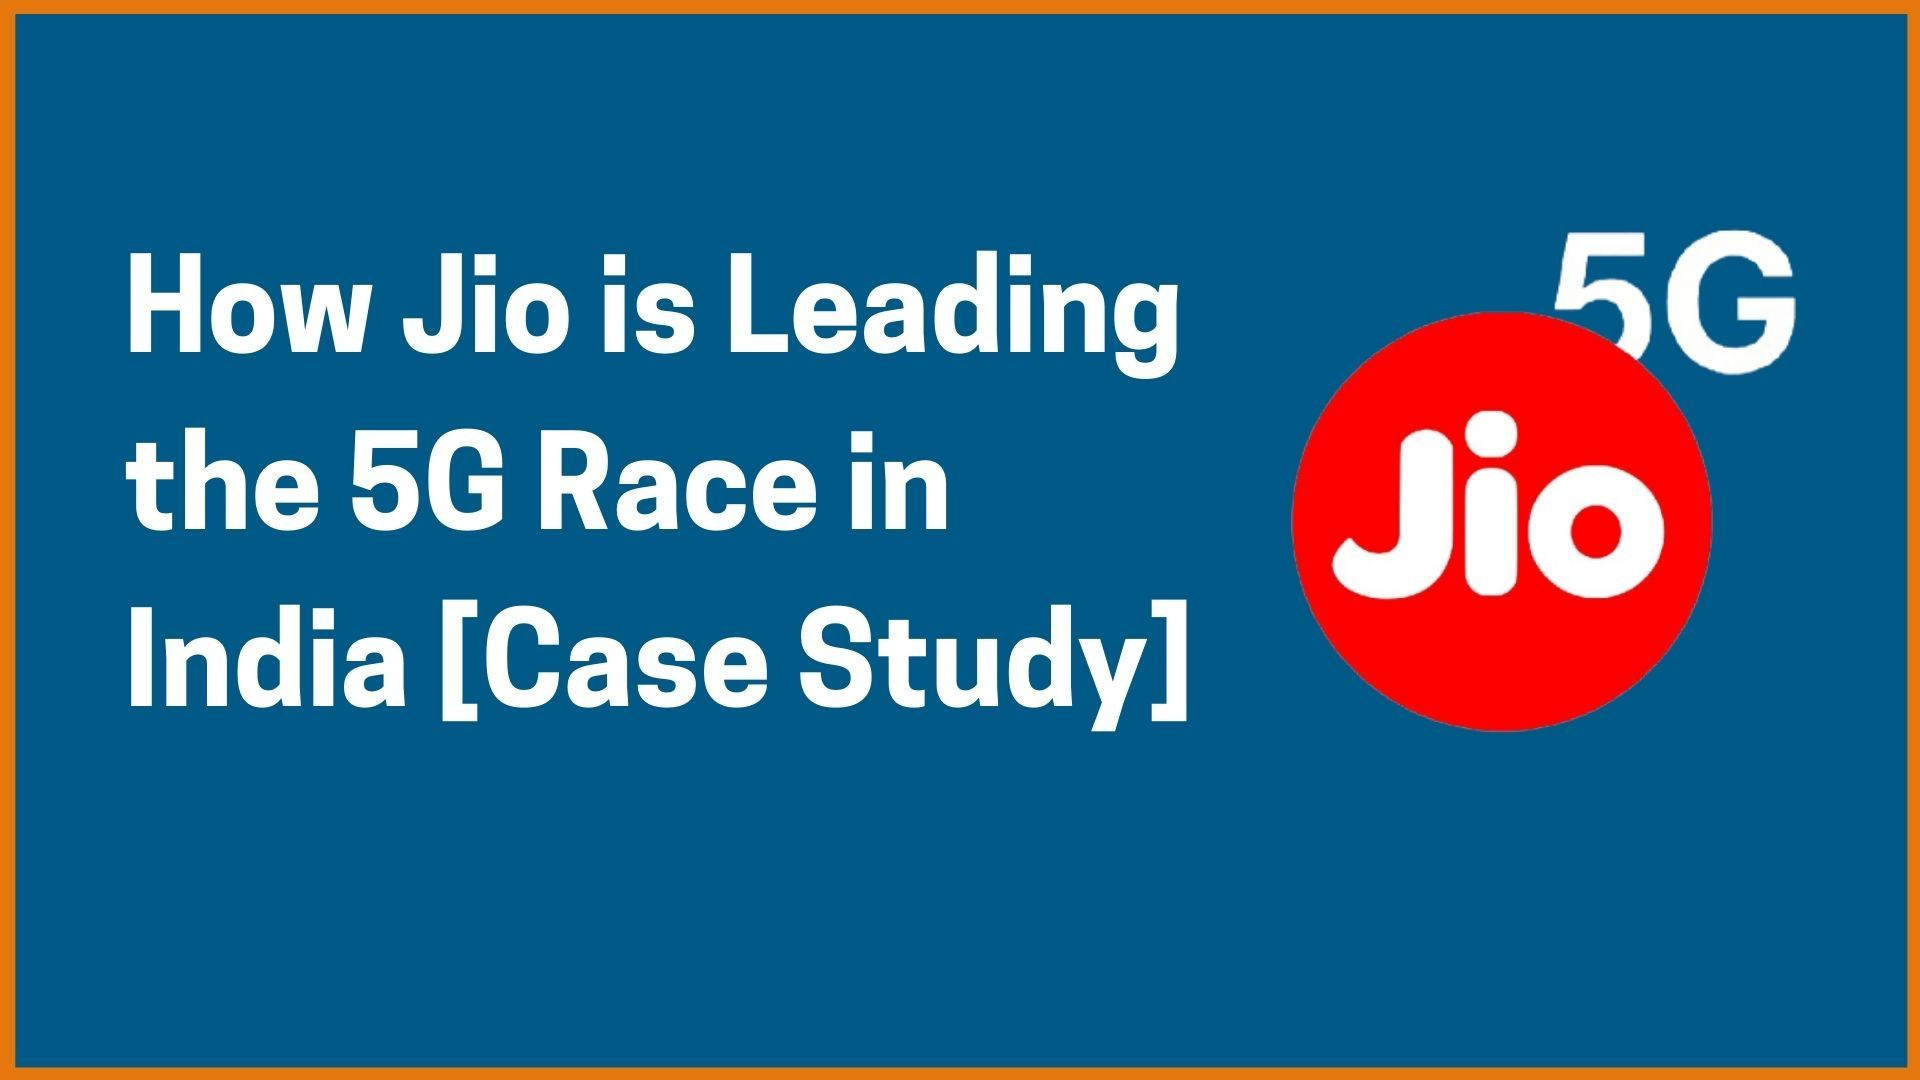 How Jio is Leading the 5G Race in India [Case Study]